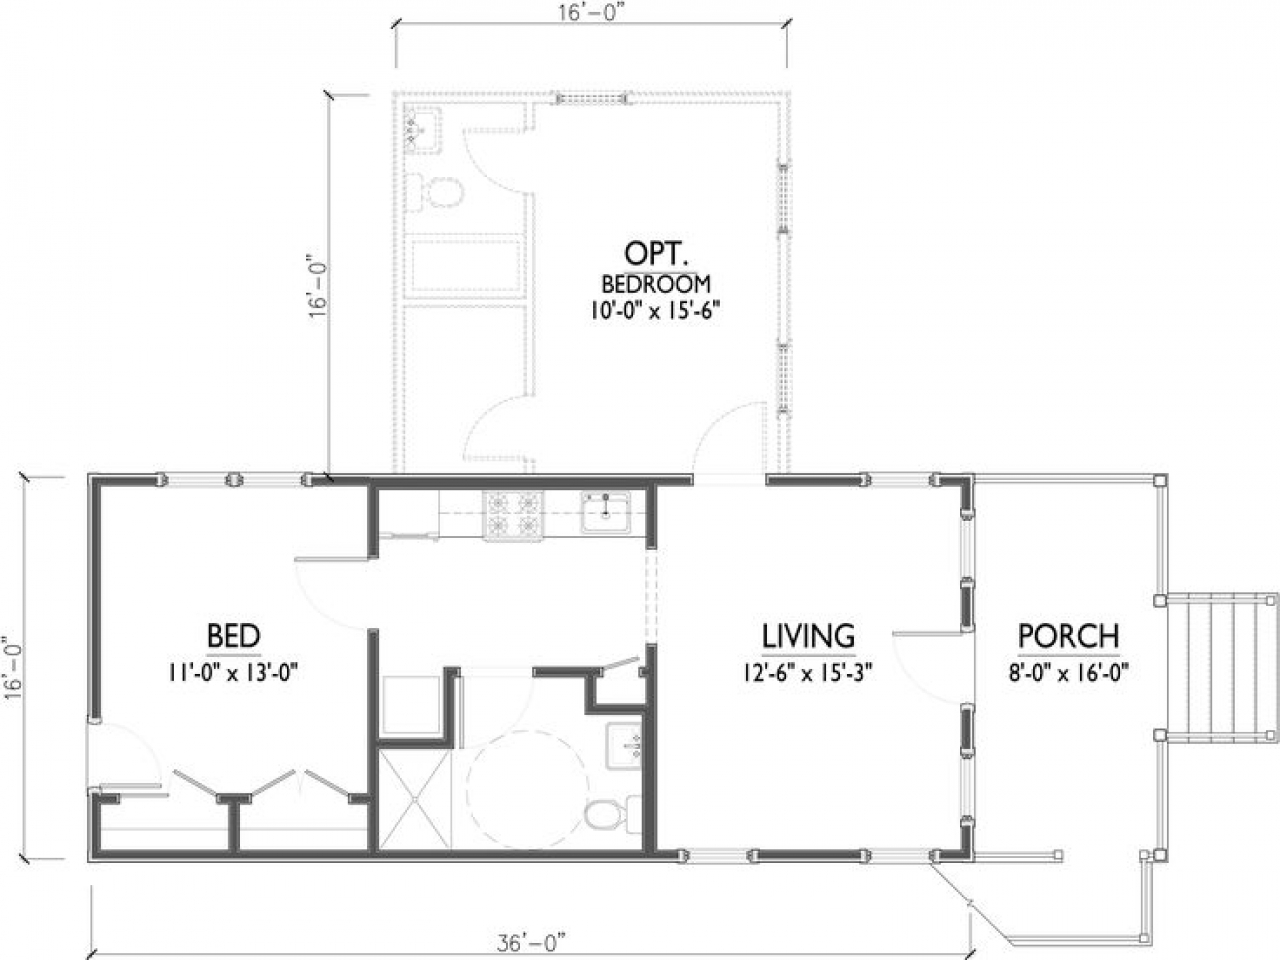 katrina lowe s home plans html with 59f49d62a25b0f88 Marianne Cusato Katrina Cottages Cusato Cottages Plan Homes I Can Live In Pinterest on 39ffabb87ad41553 Tumbleweed Tiny House Floor Plans Tumbleweed Tiny Houses also 91eb5fa52b8c9a8a Cottage Floor Plans Via Cool House Plans Cottage Floor Plans With Loft furthermore 510c643cc6b4e135 Katrina Cottage House Plans Katrina Cottages Costs likewise 510c643cc6b4e135 Katrina Cottage House Plans Katrina Cottages Costs moreover Dac2c67d5c0359a5 Katrina Cottages Prefab Katrina Cottage Floor Plan.